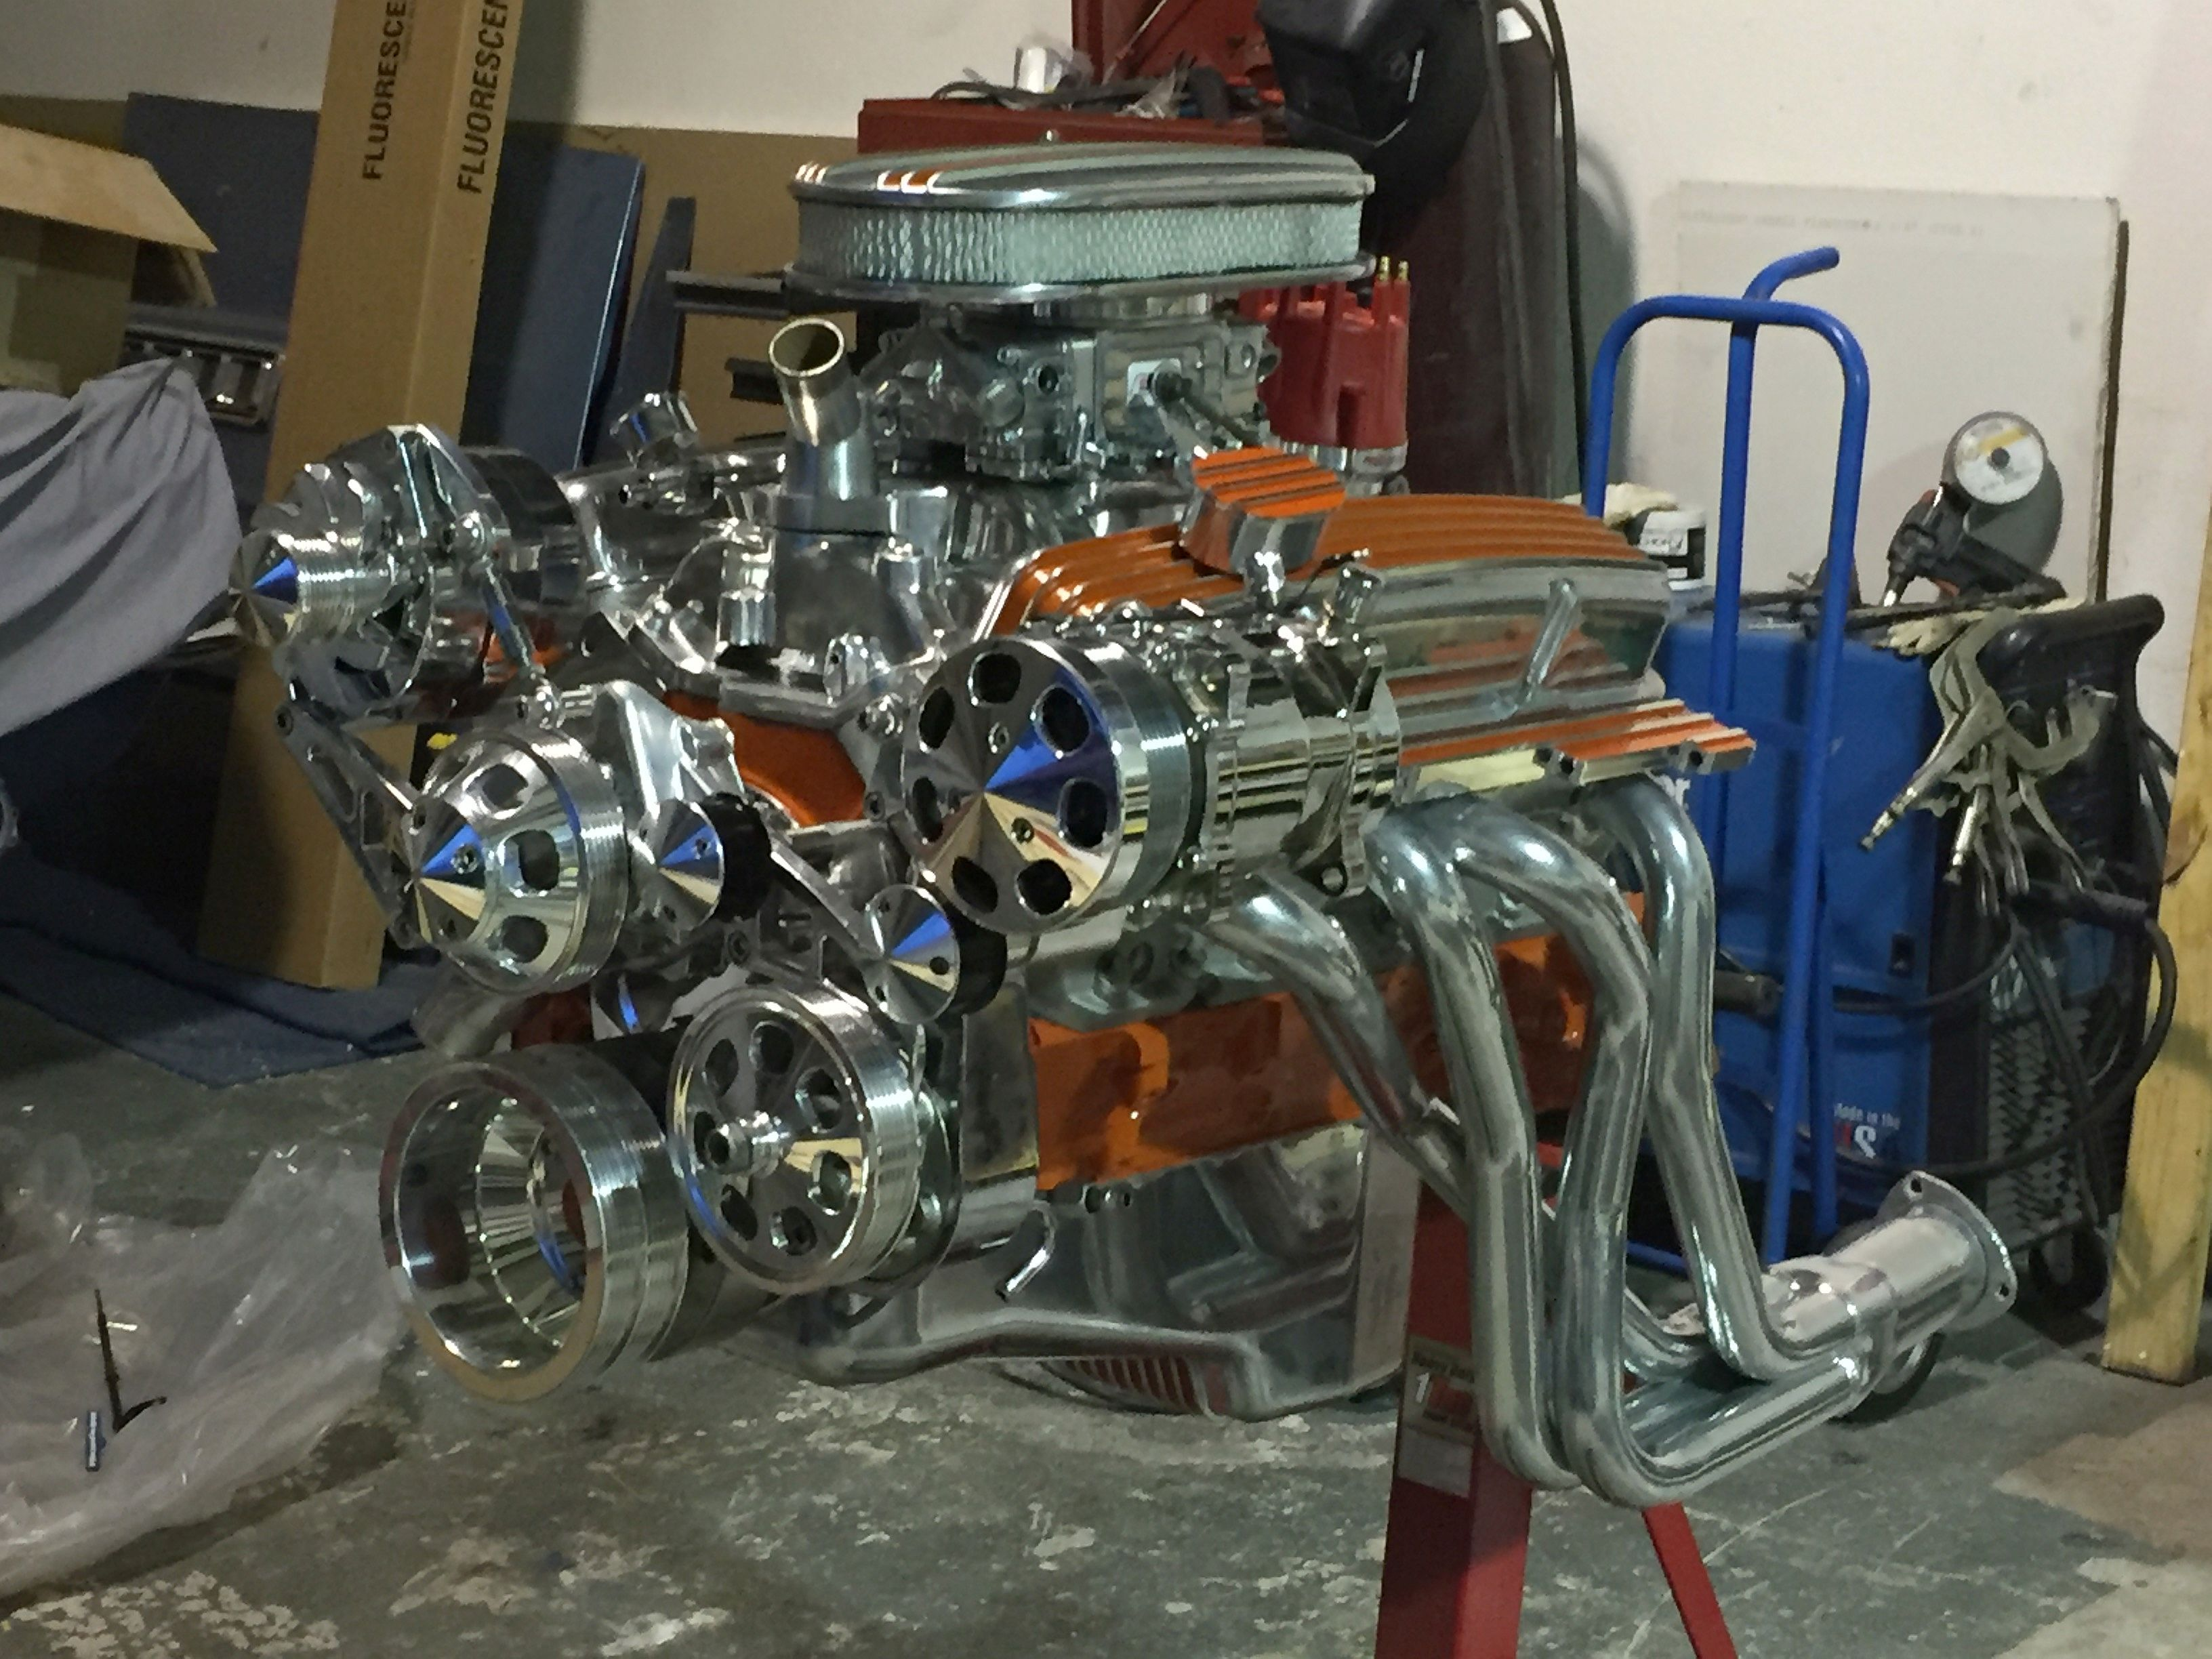 383ci stroker crate engine small block gm style longblock blueprint engines customer roger alred has shared some impressive photos with us of his beautiful 1968 chevy camaro convertible malvernweather Choice Image